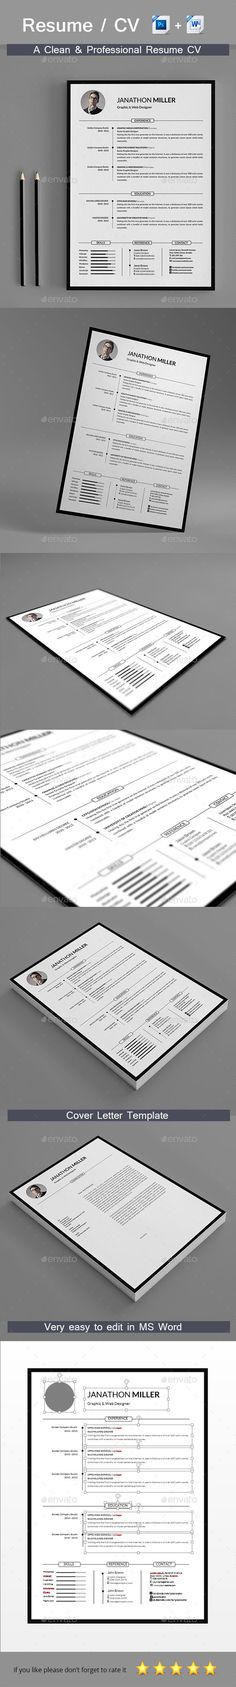 Resume Template - Resumes Stationery Template PSD. Download here: http://graphicriver.net/item/resume-template/16566940?s_rank=816&ref=yinkira